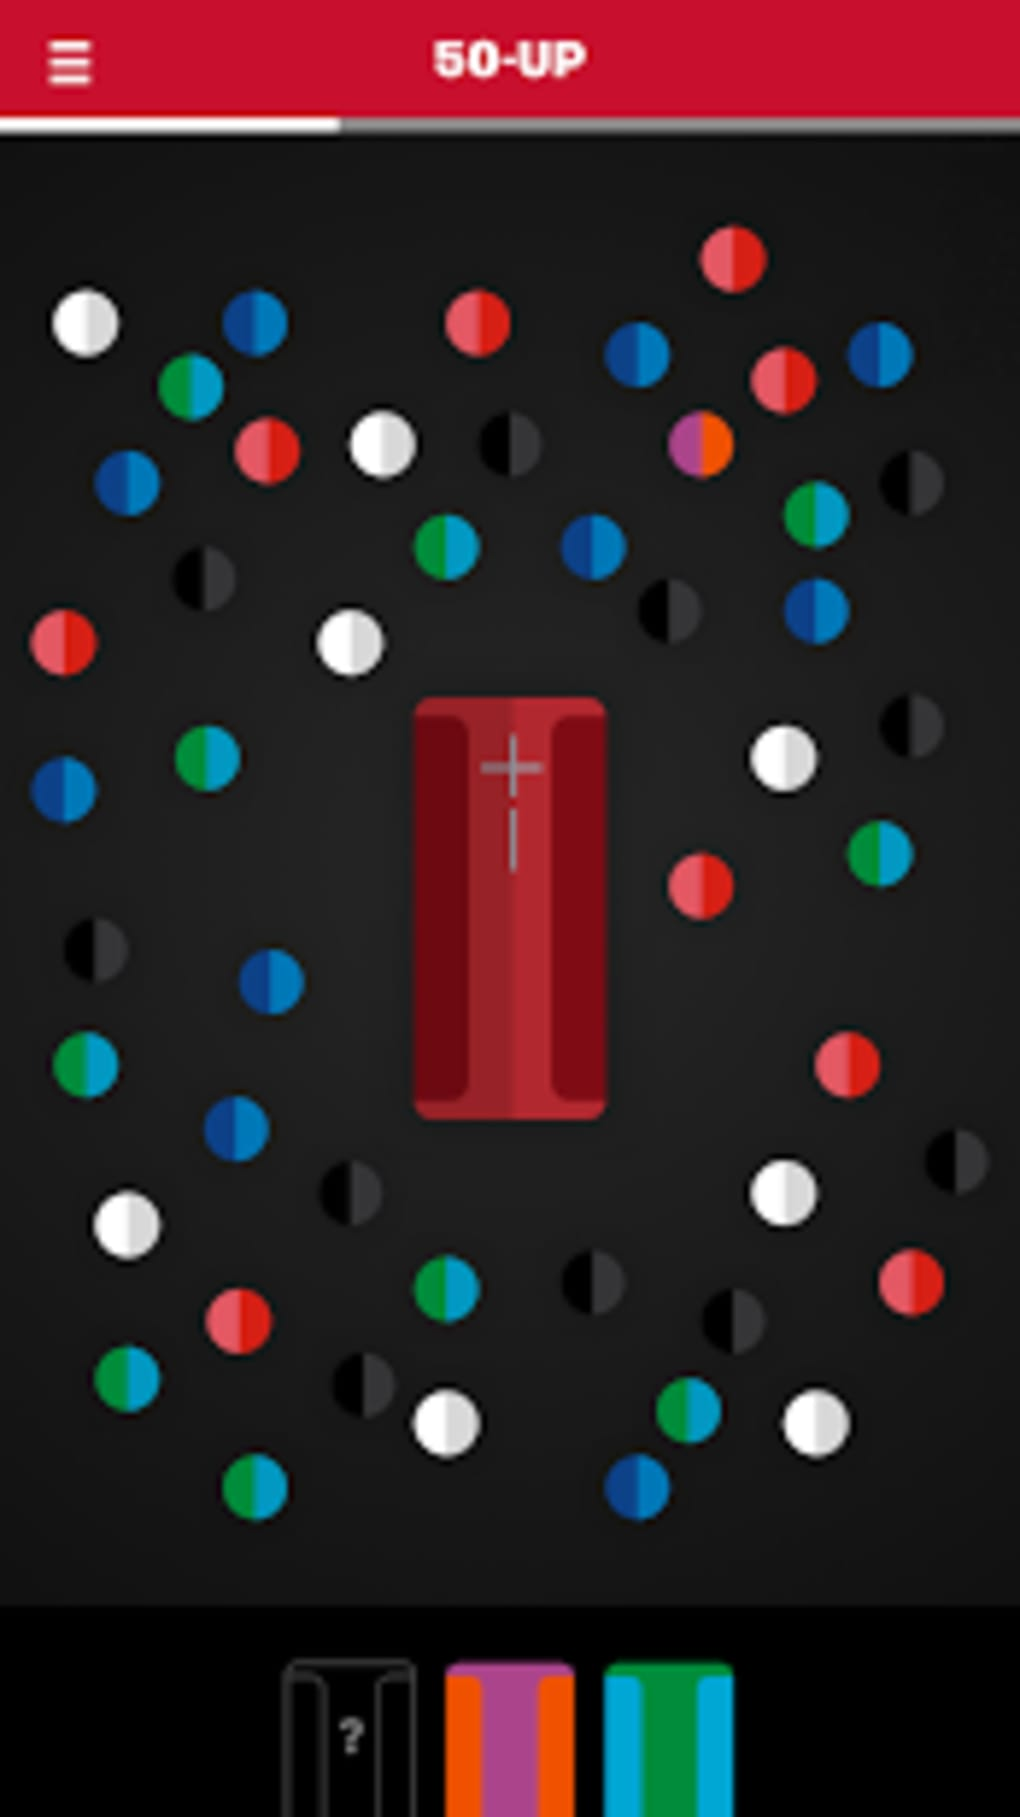 UE MEGABOOM for Android - Download